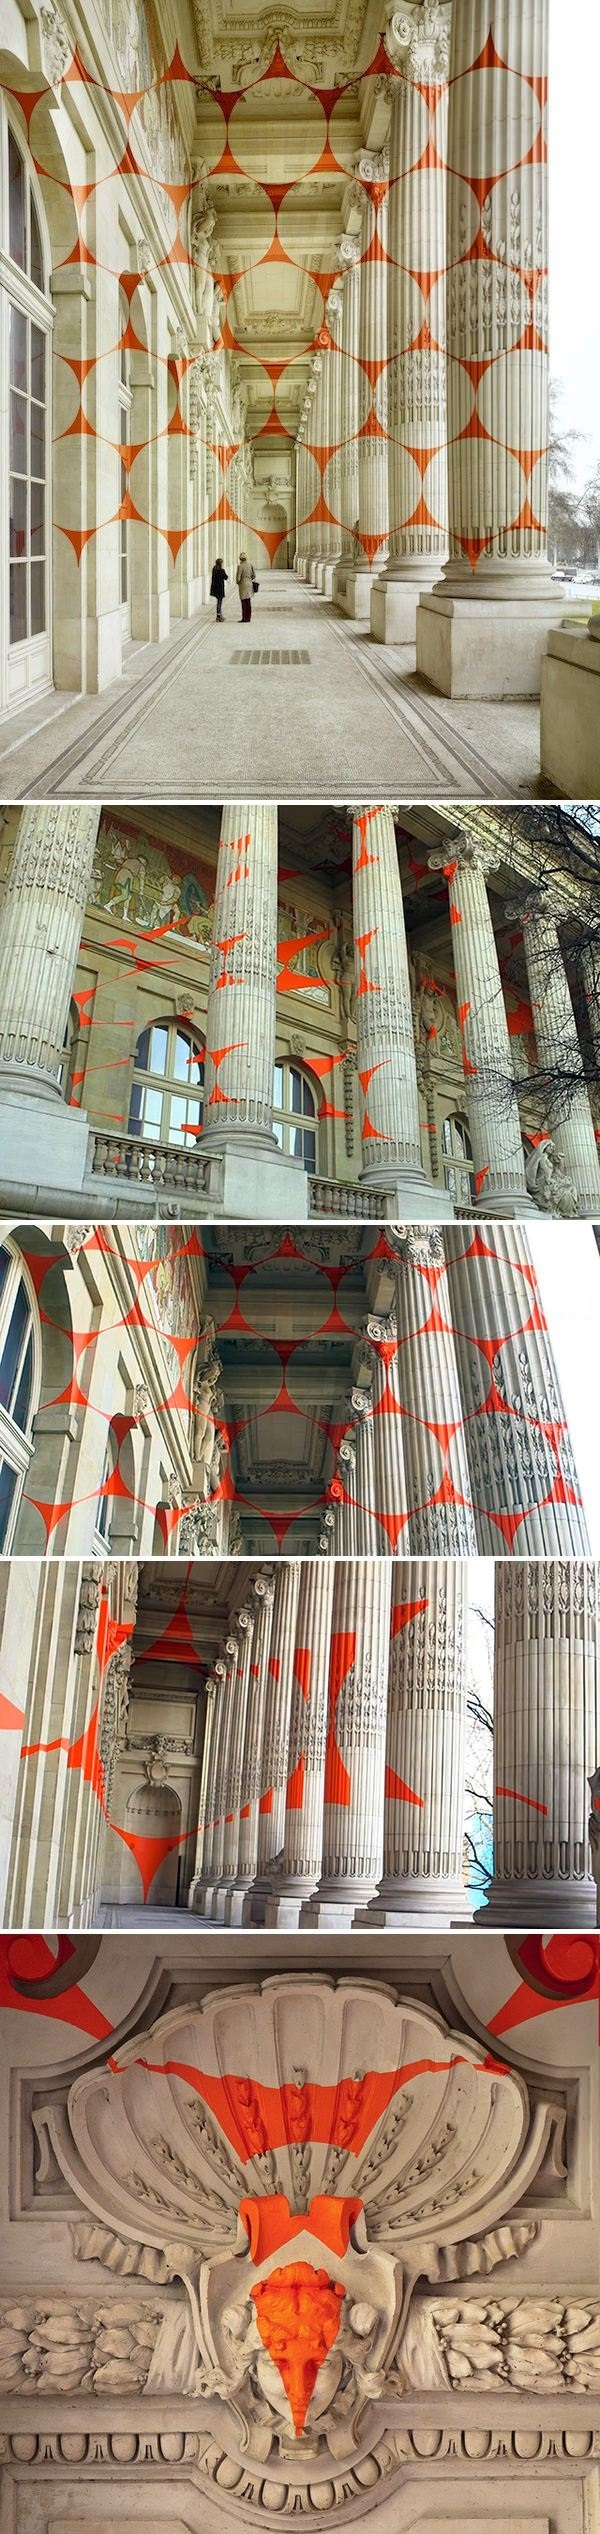 Large scale optical illusion